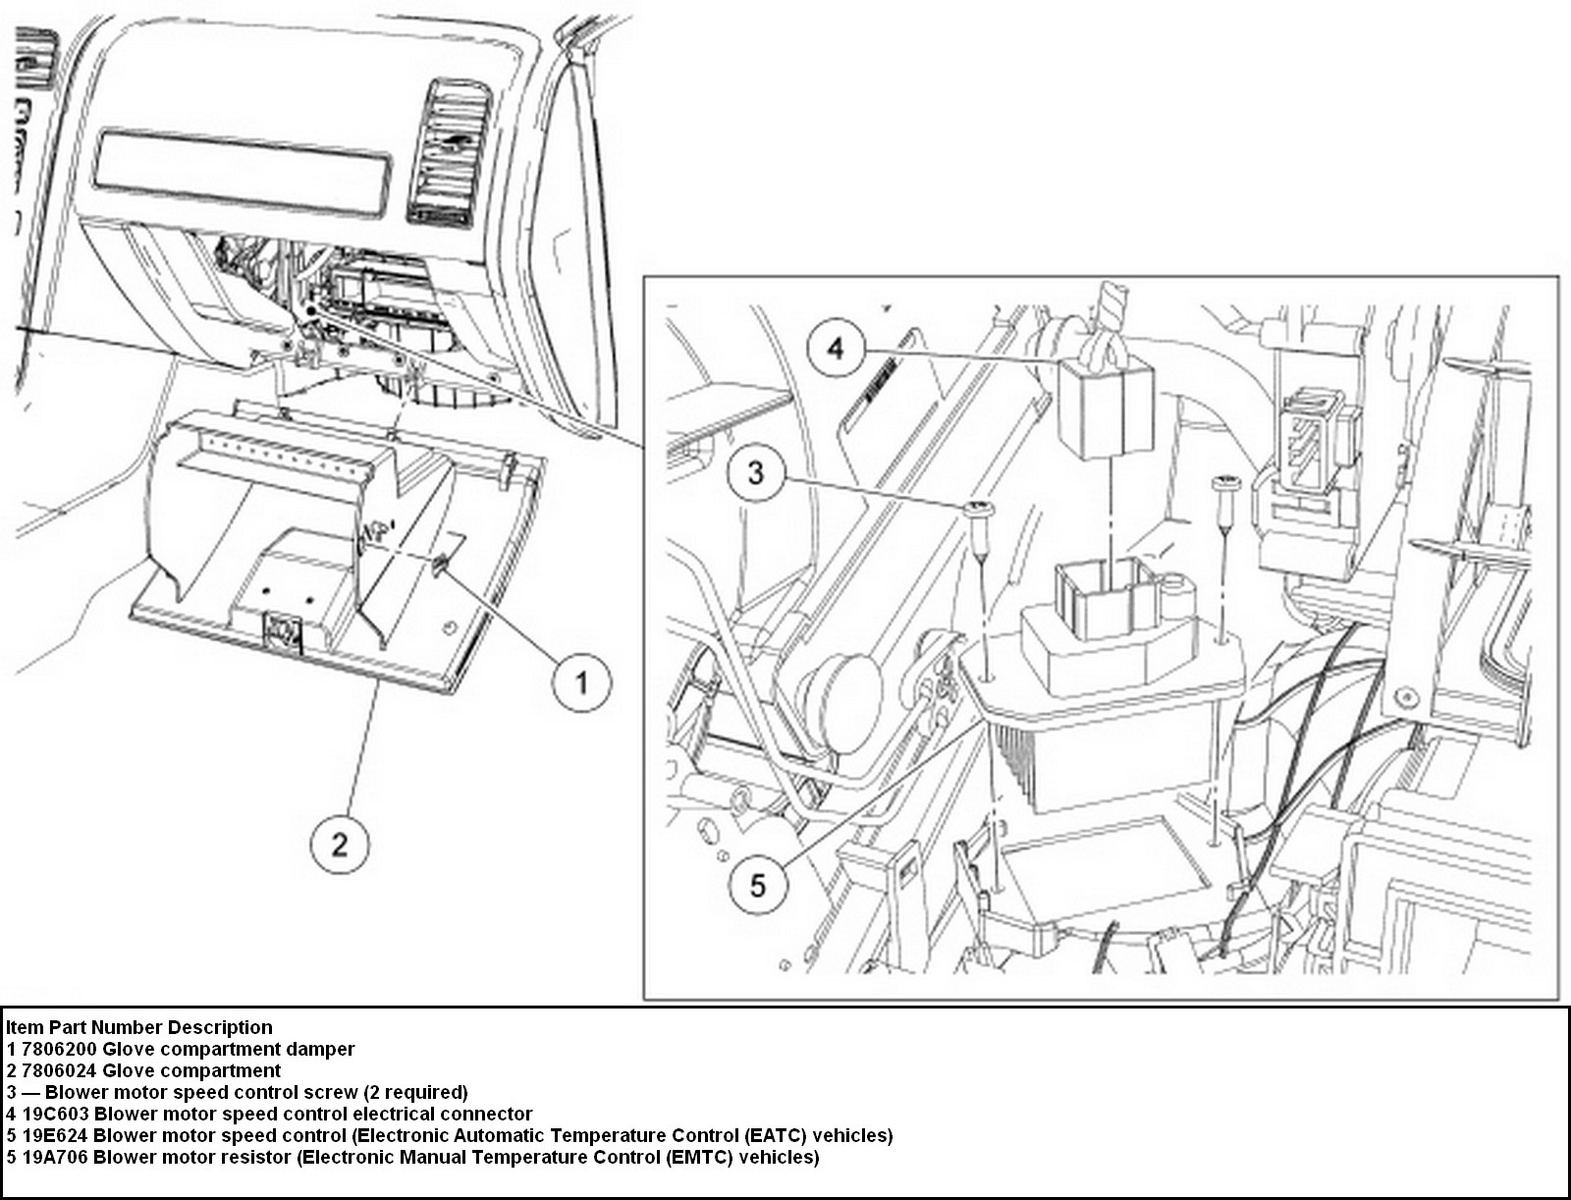 2007 Edge Fuse Box Diagram Archive Of Automotive Wiring 2008 F250 Under Hood Ford Questions How Do You Remove And Replace Install A Blower Rh Cargurus Com